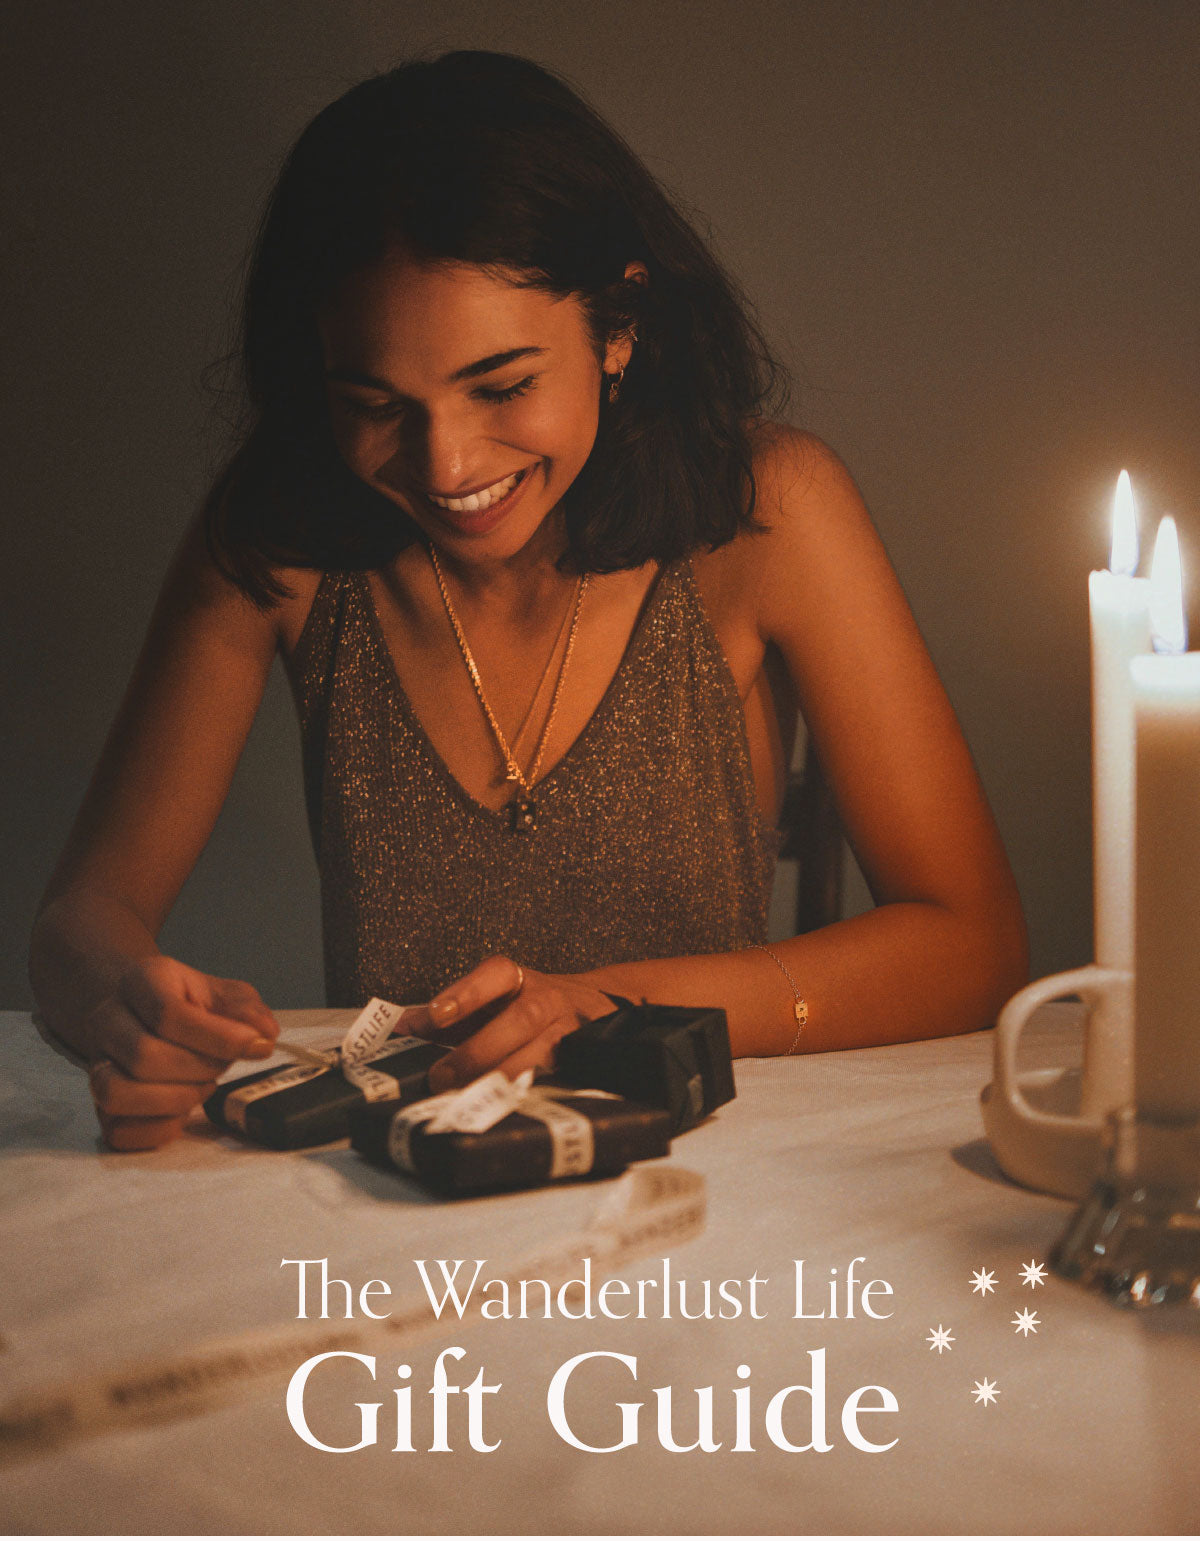 The Wanderlust Life Gift Guide